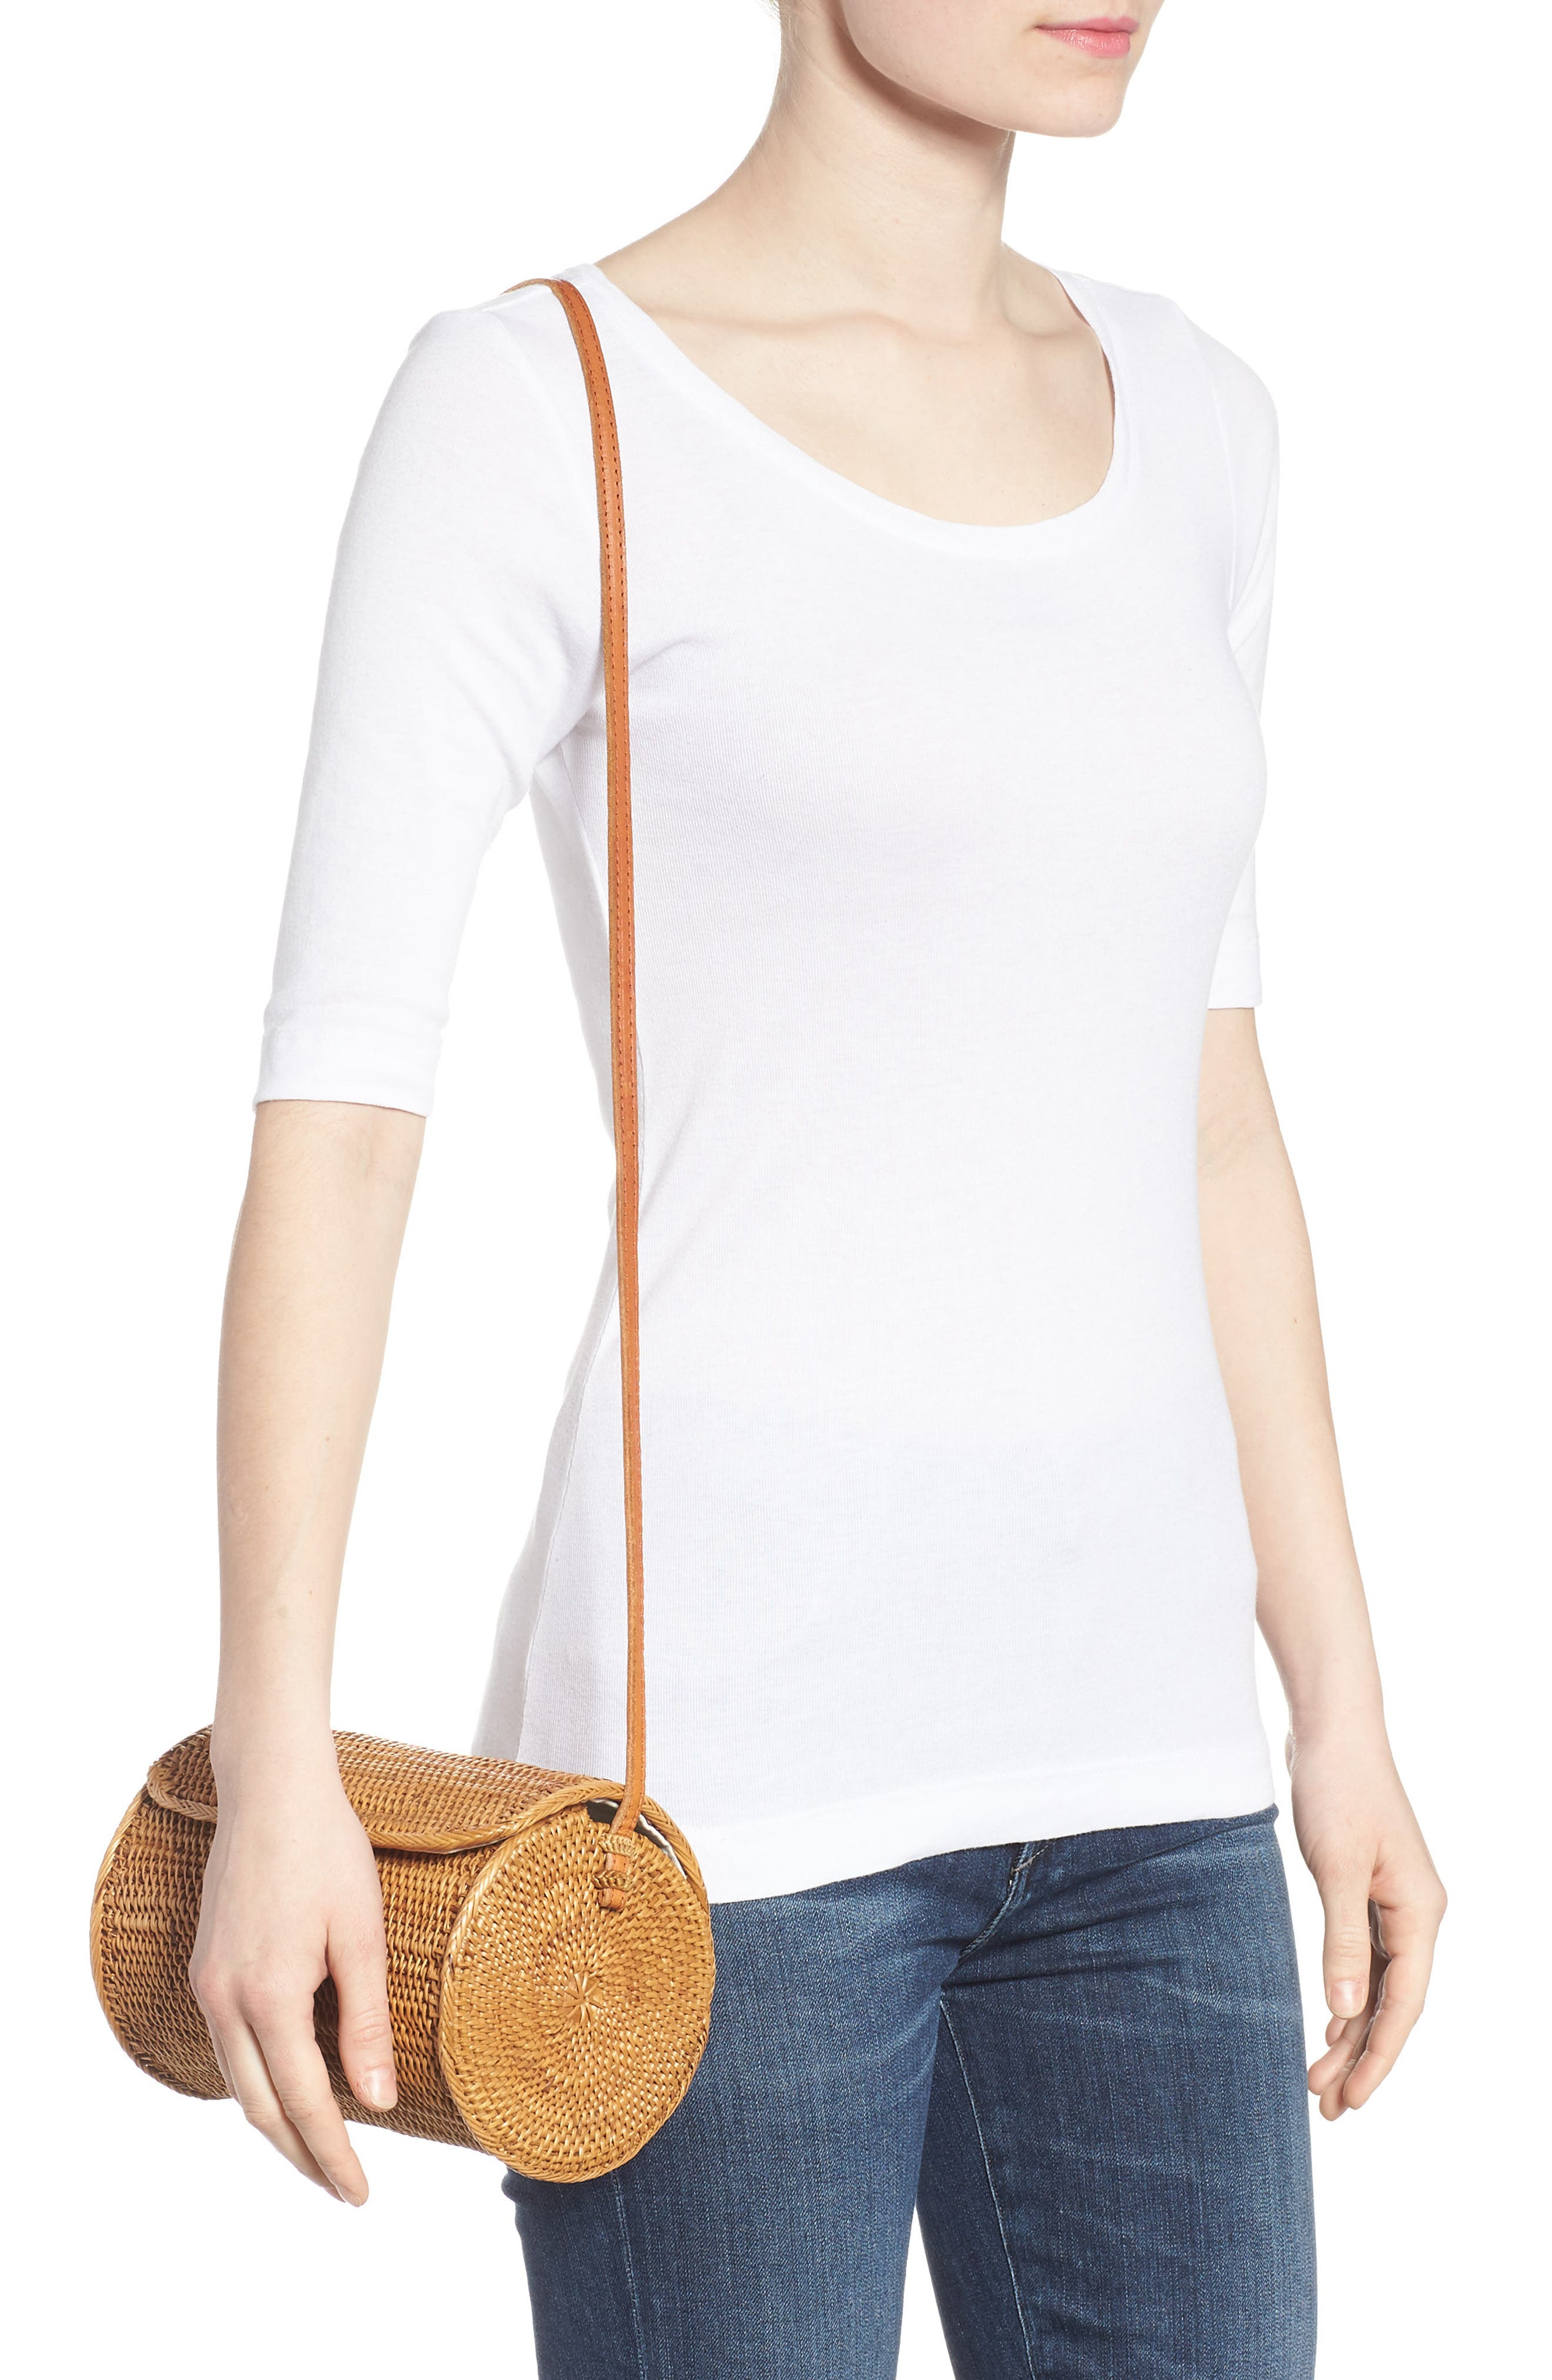 Cylinder Woven Crossbody Bag,                             Alternate thumbnail 2, color,                             230